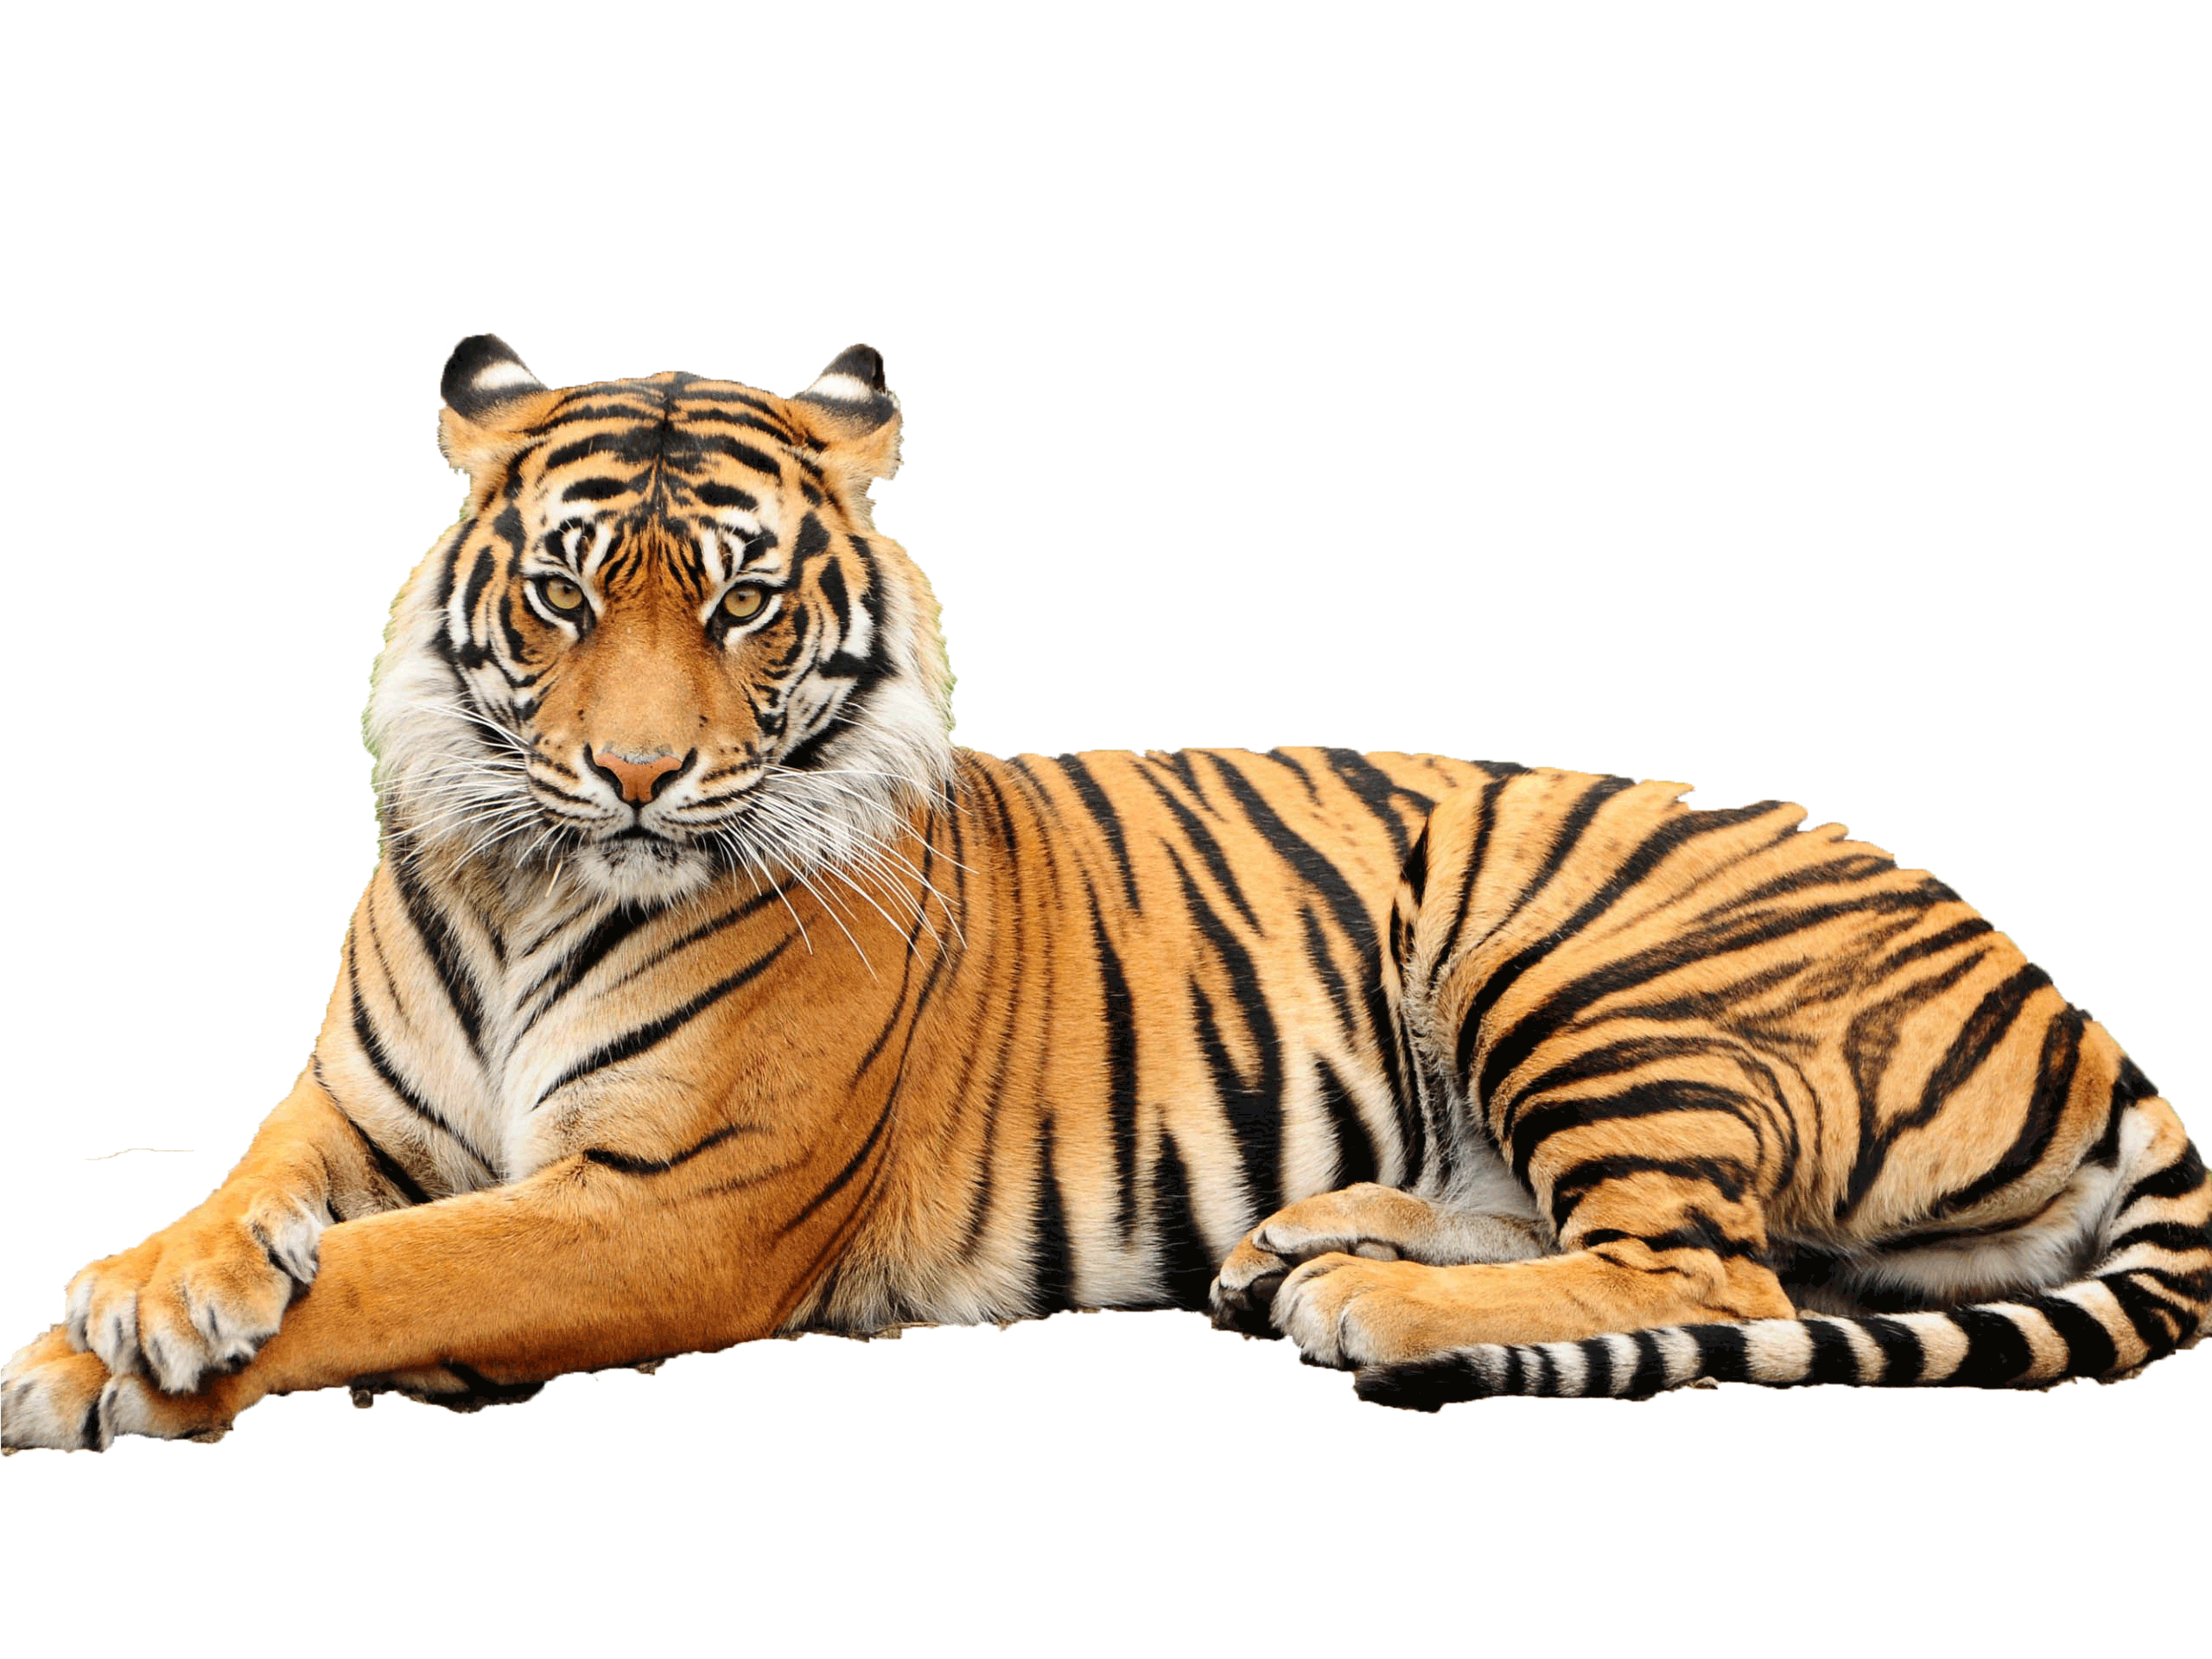 Tiger Png Pictures Image #39177 - PNG Tiger Face - Tiger HD PNG